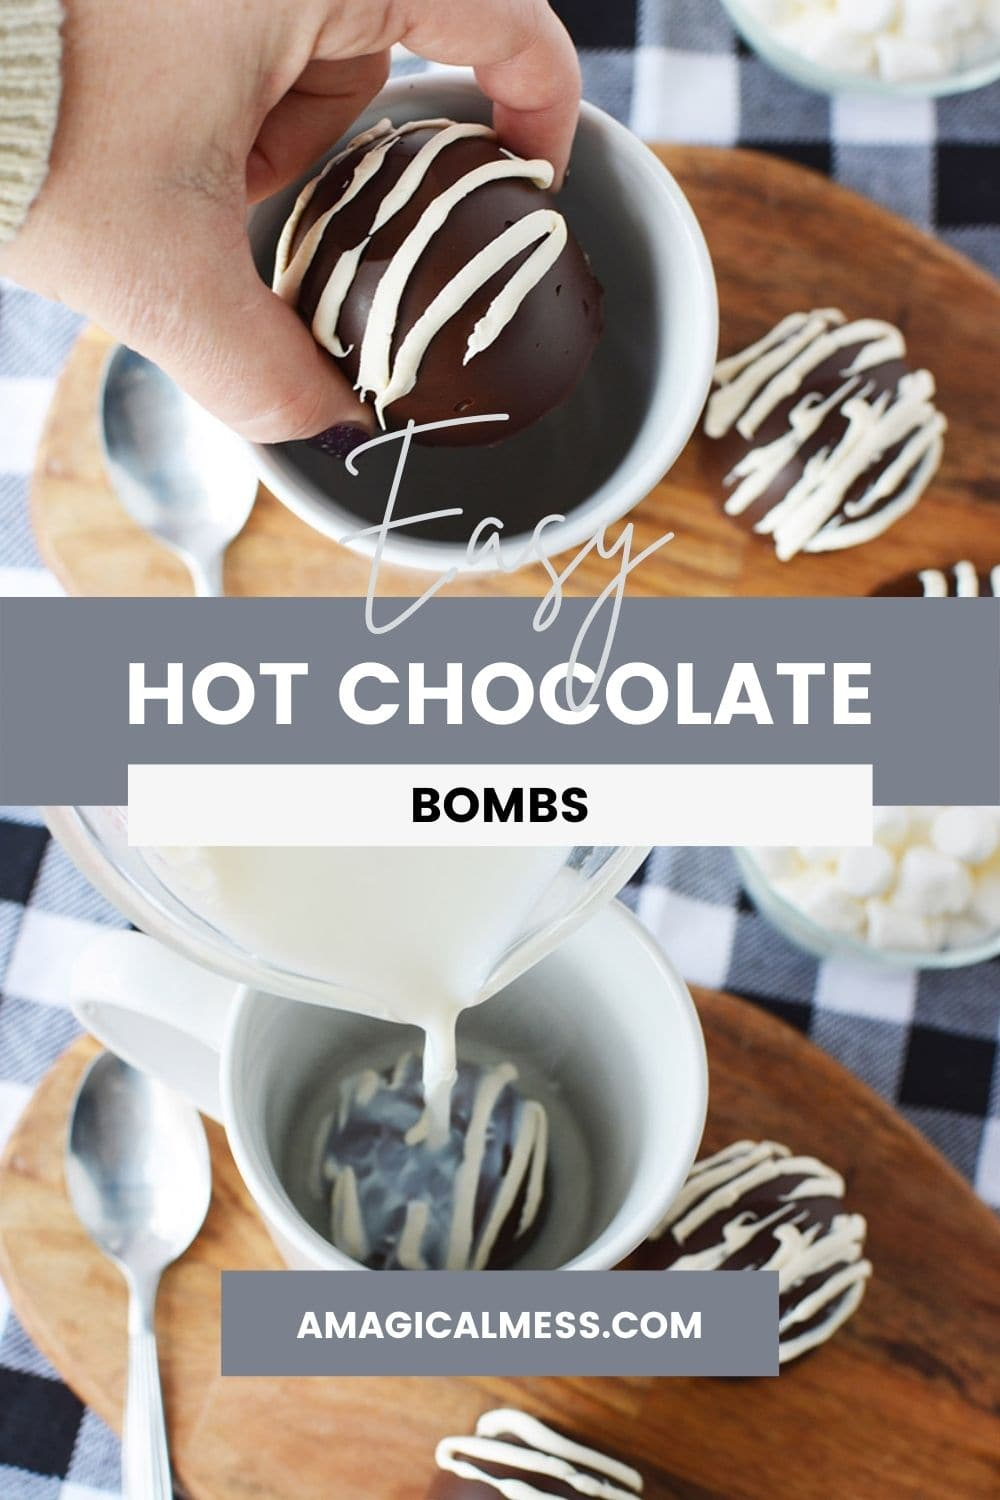 Dropping a hot chocolate bomb into a mug and pouring milk on it.